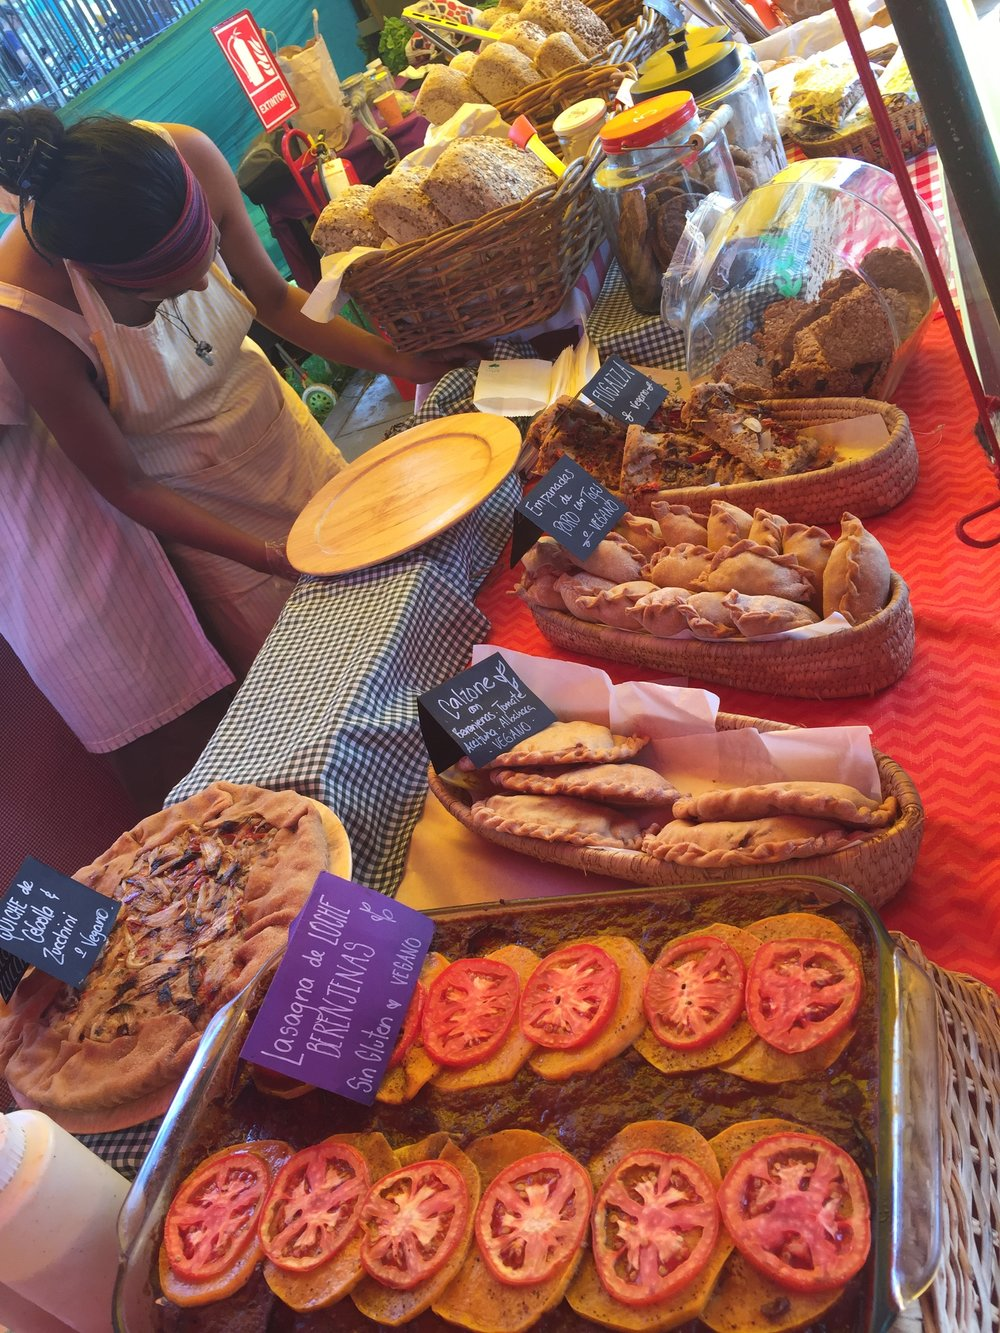 Vegan bakery stand at the Bioferia organic market in Miraflores district.